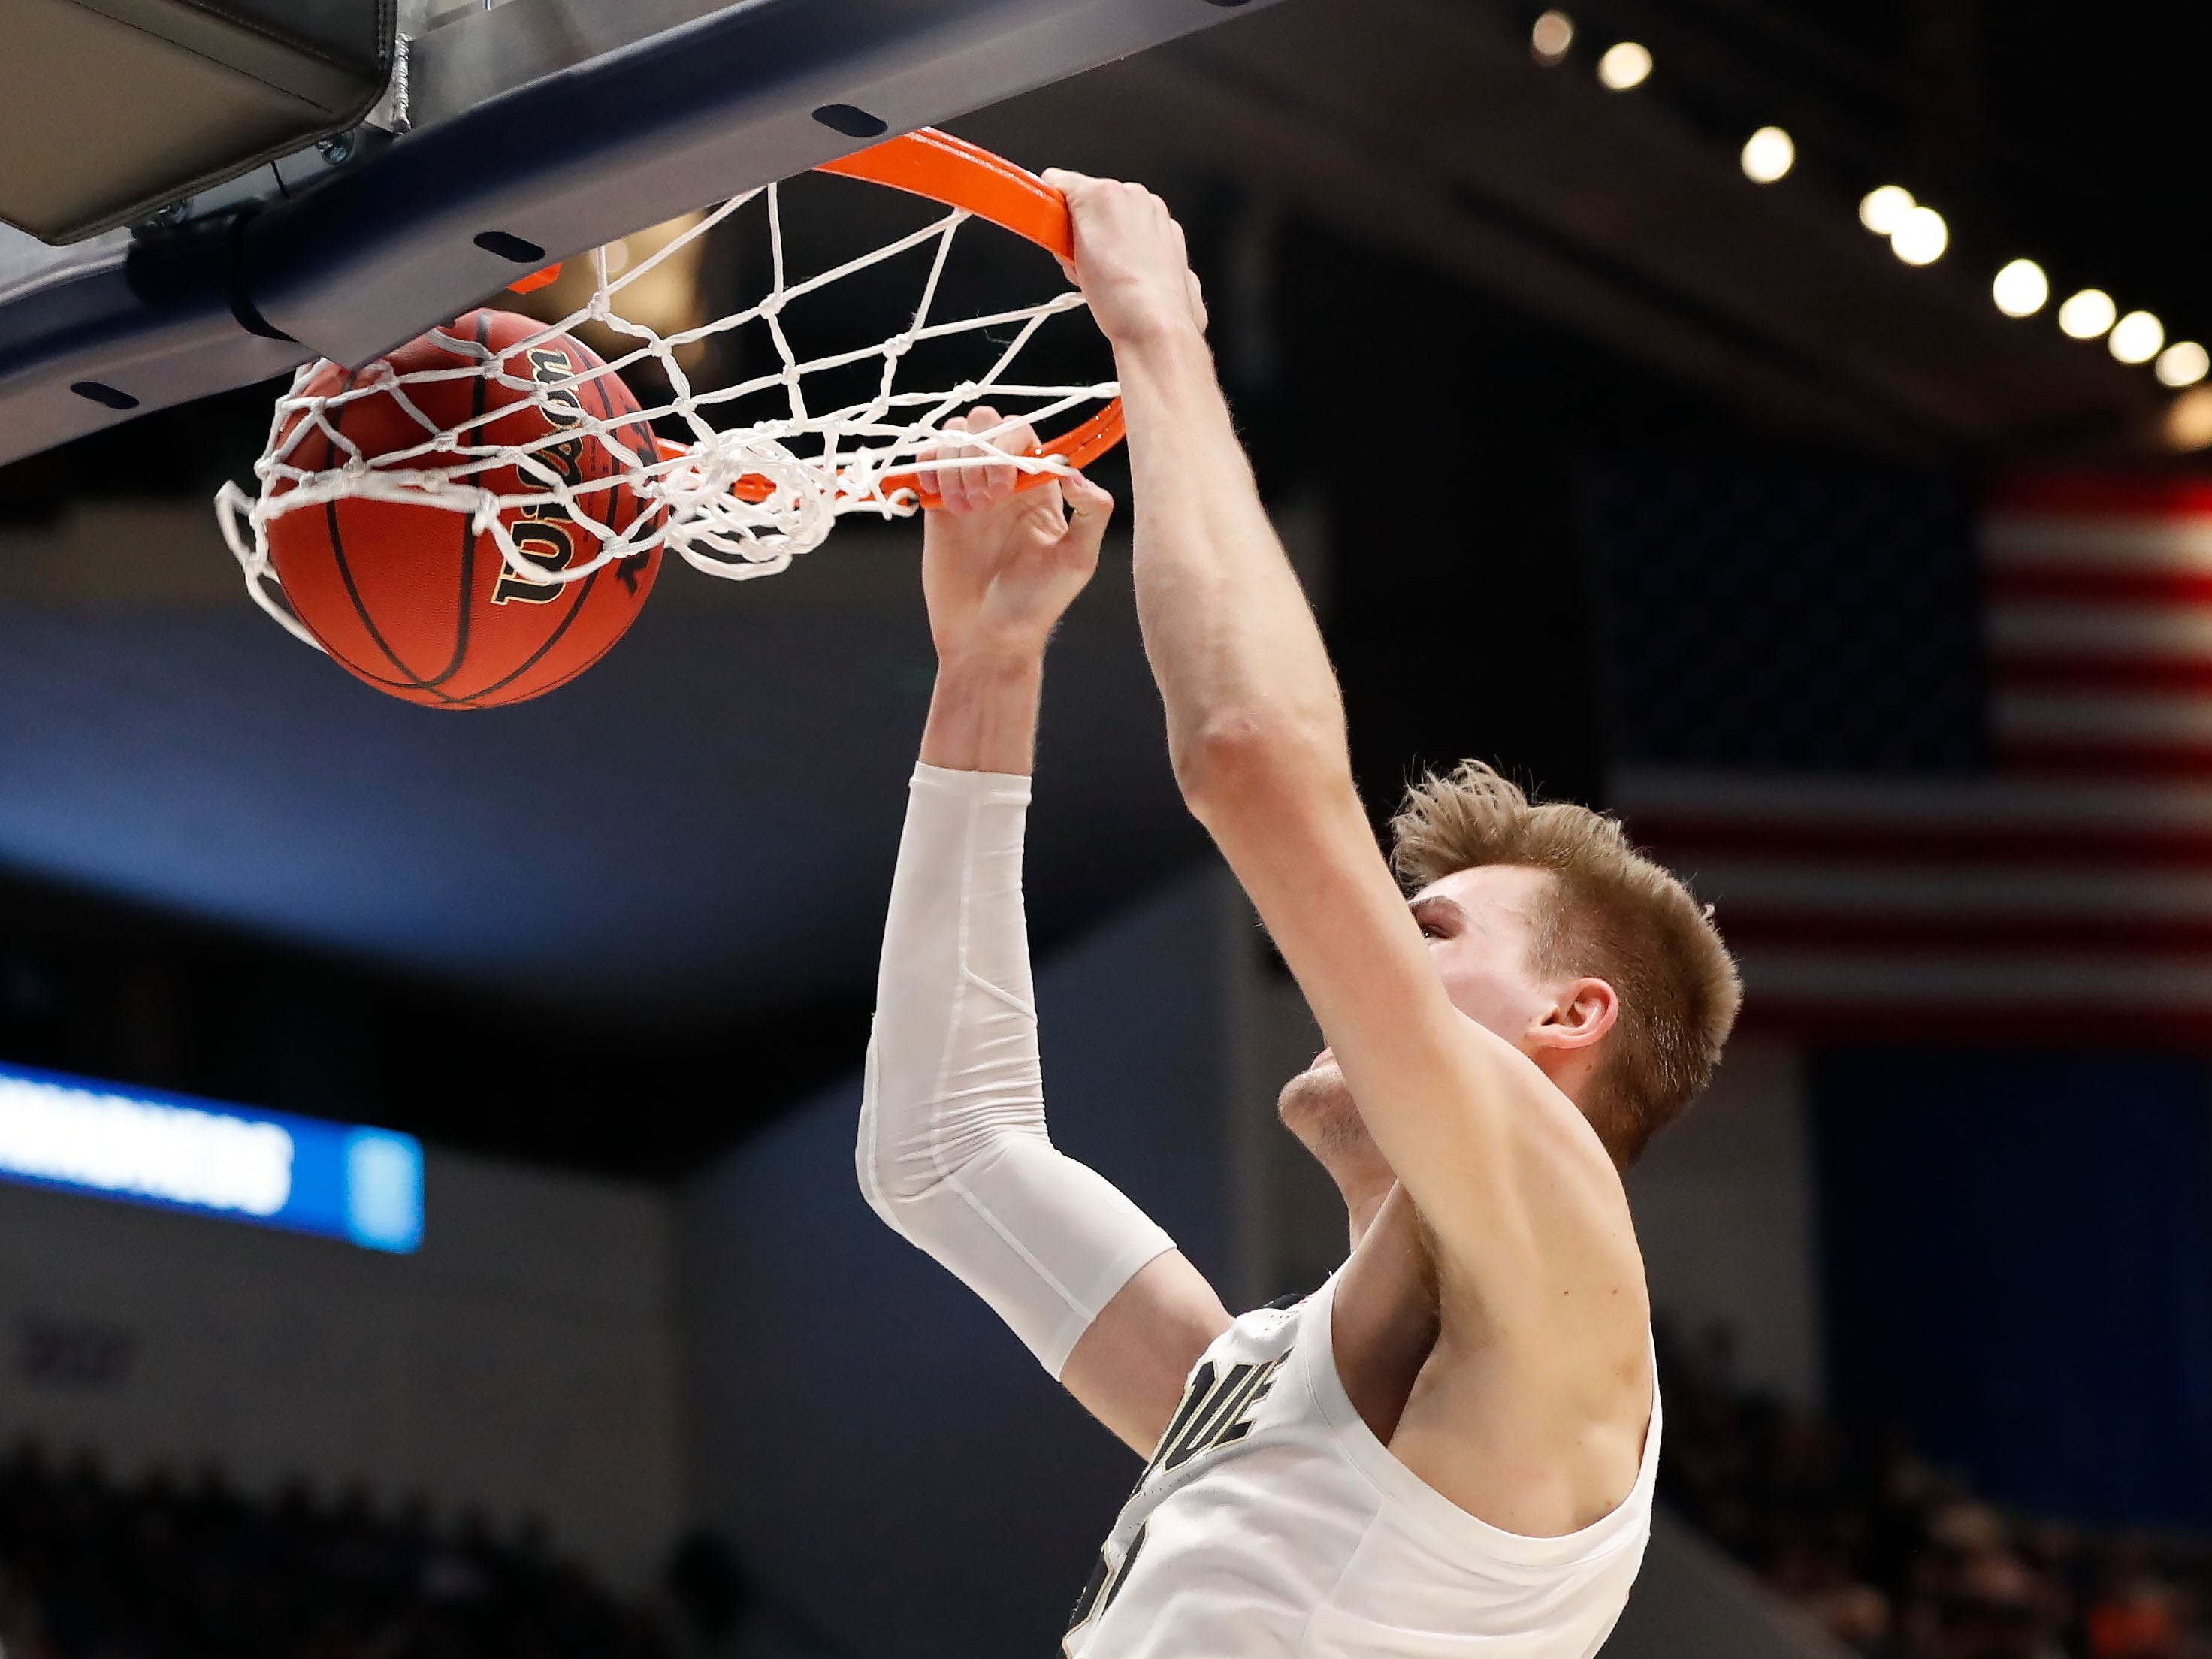 Purdue Boilermakers center Matt Haarms (32) dunks and scores against the Villanova Wildcats during the first half of a game in the second round of the 2019 NCAA Tournament at XL Center.